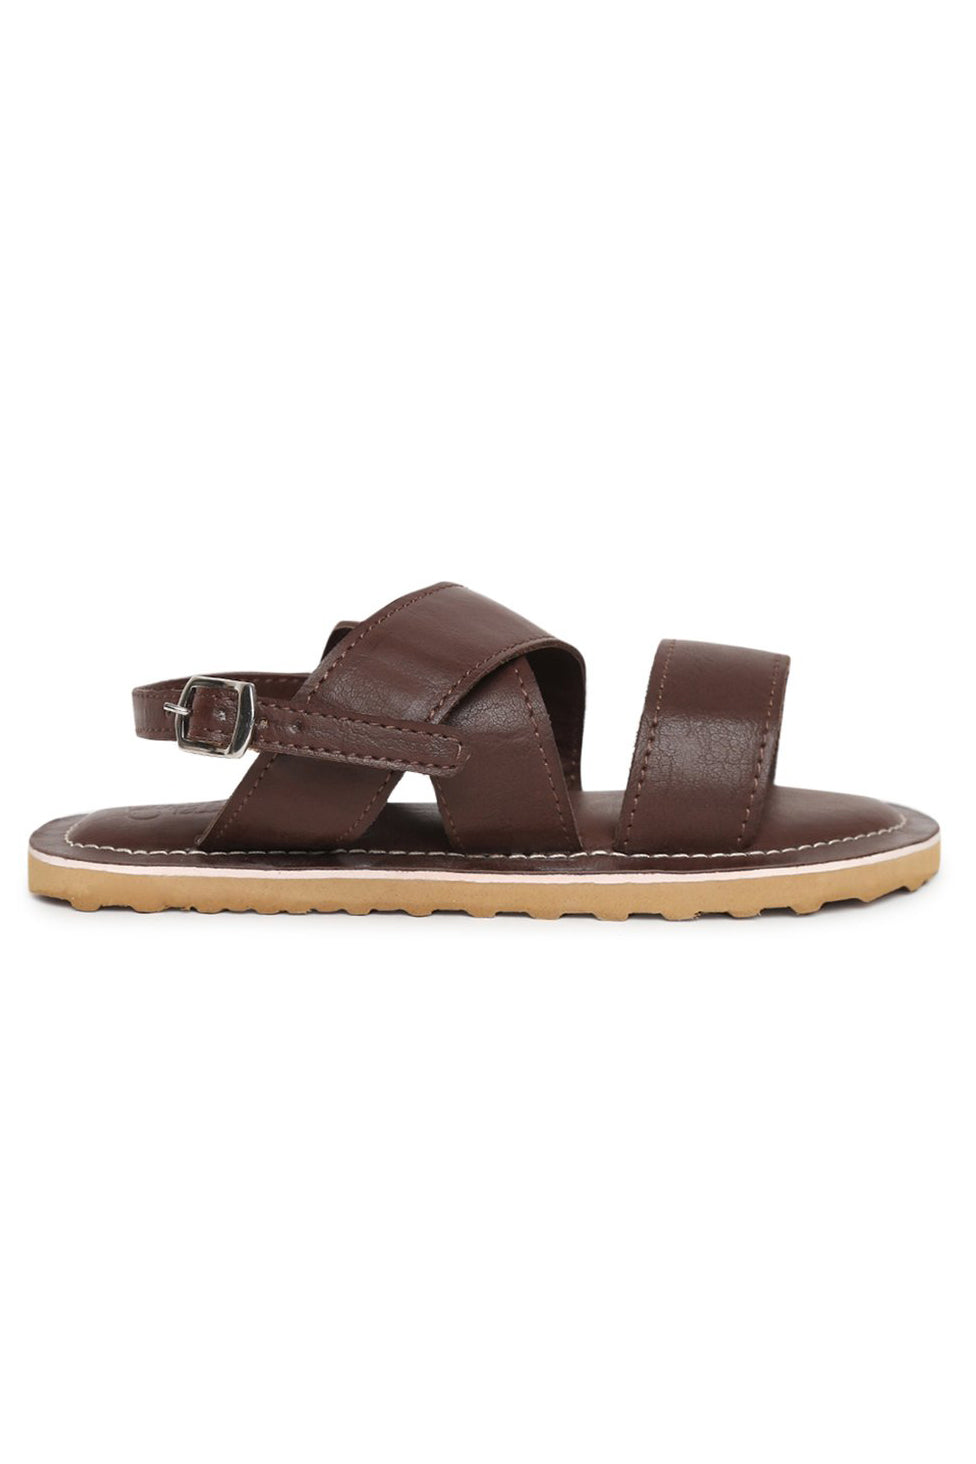 Boys Mocha Criss Cross Sandal